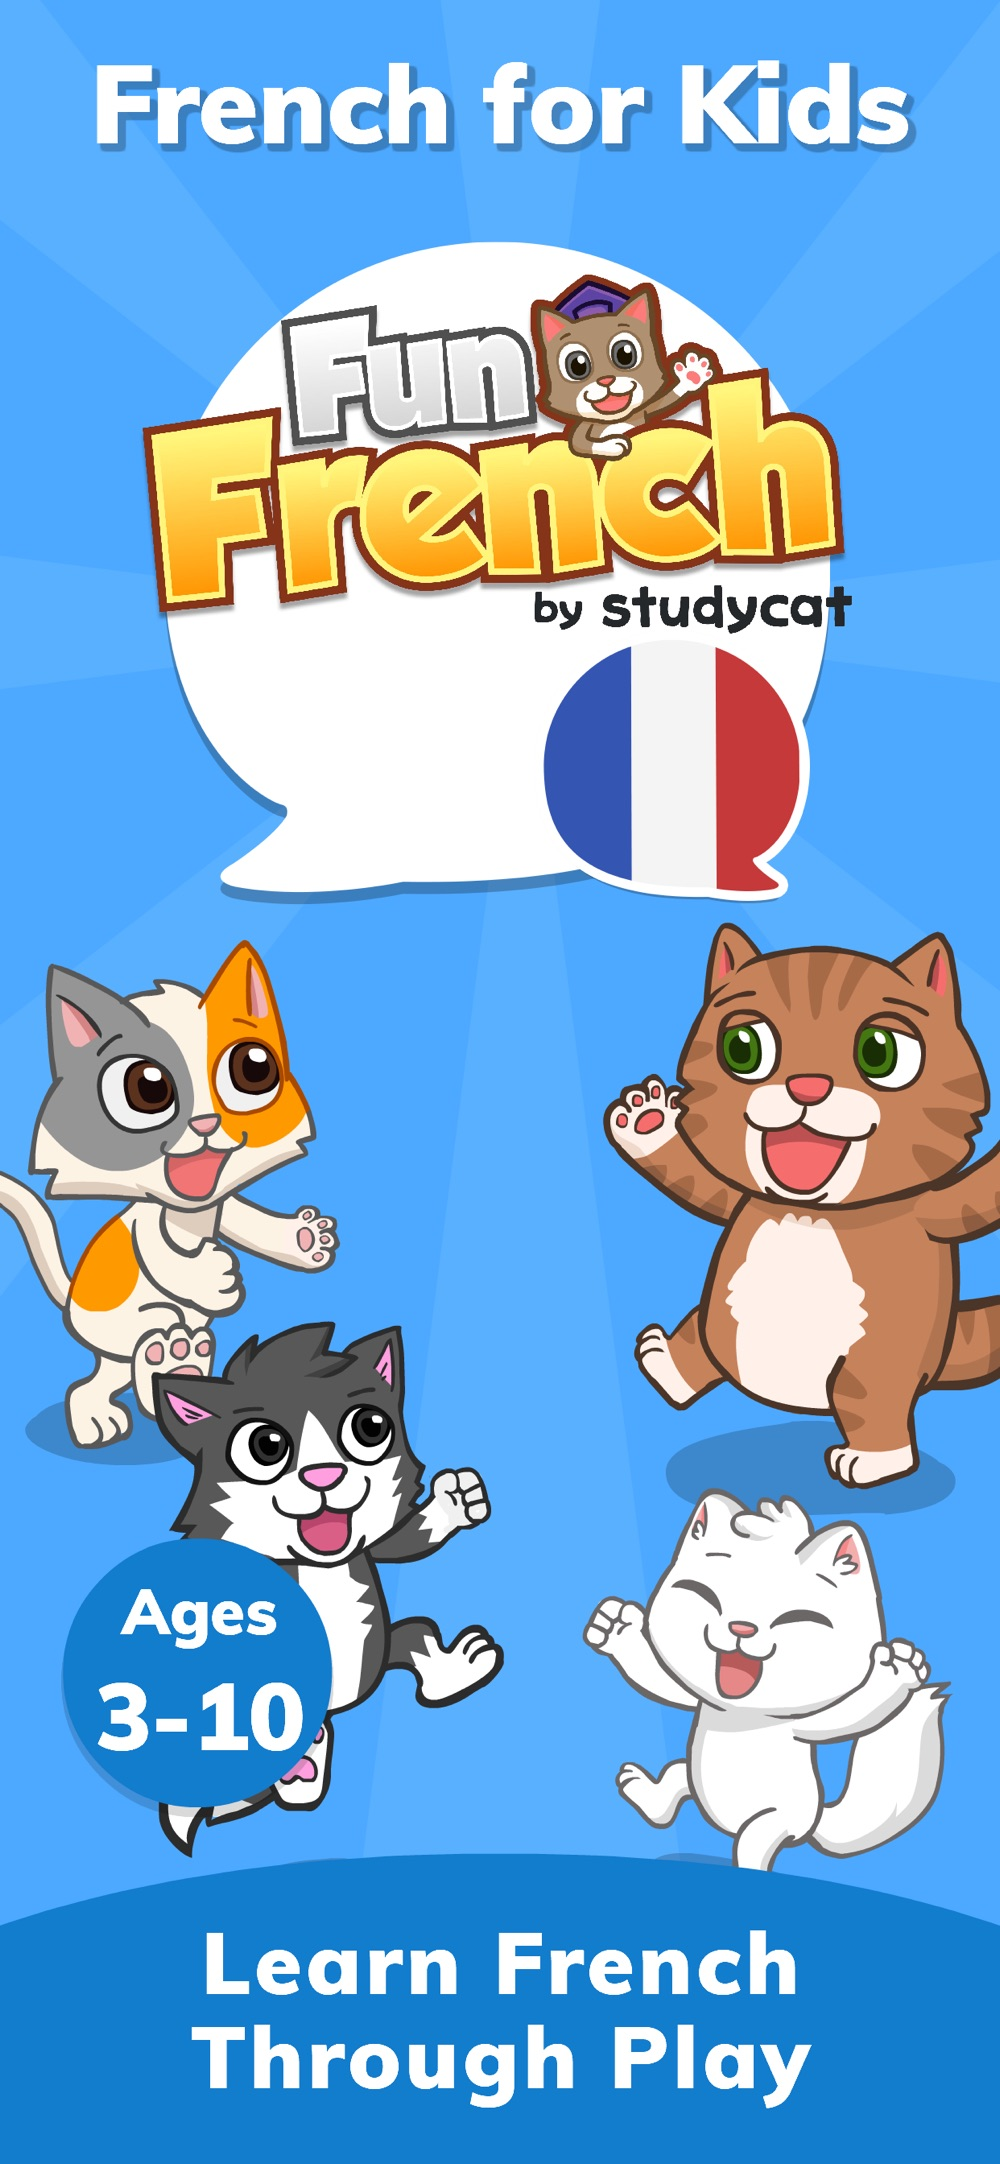 Fun French | Kids Learn French hack tool